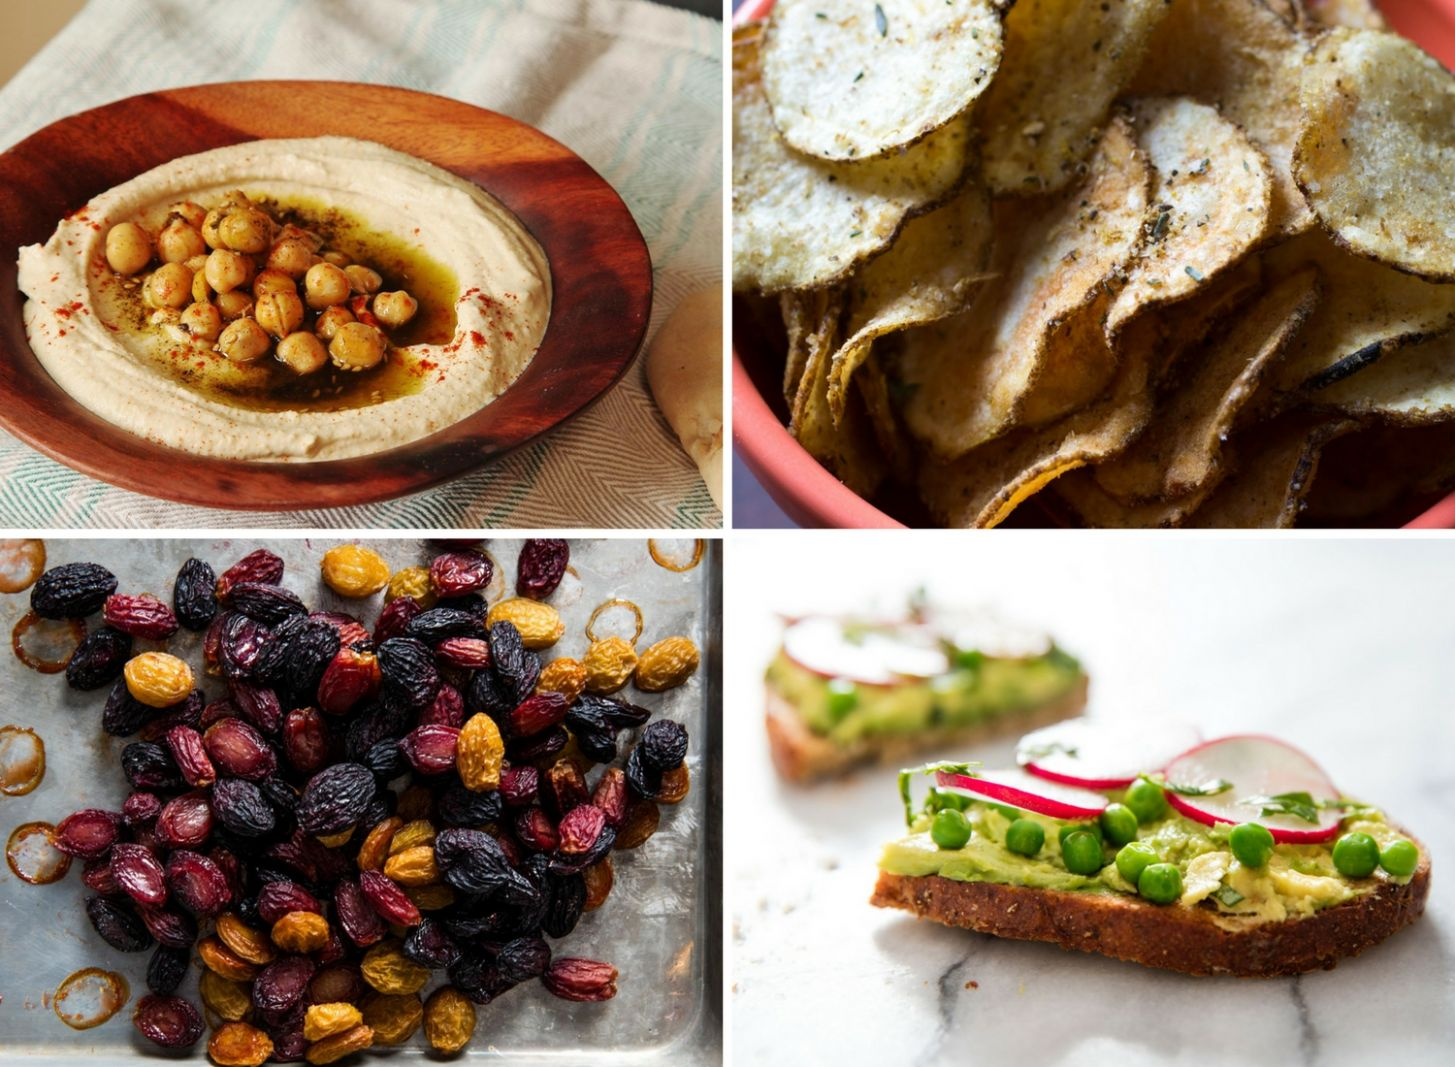 10 Vegan Snack Recipes to Satisfy Every Craving | Serious Eats